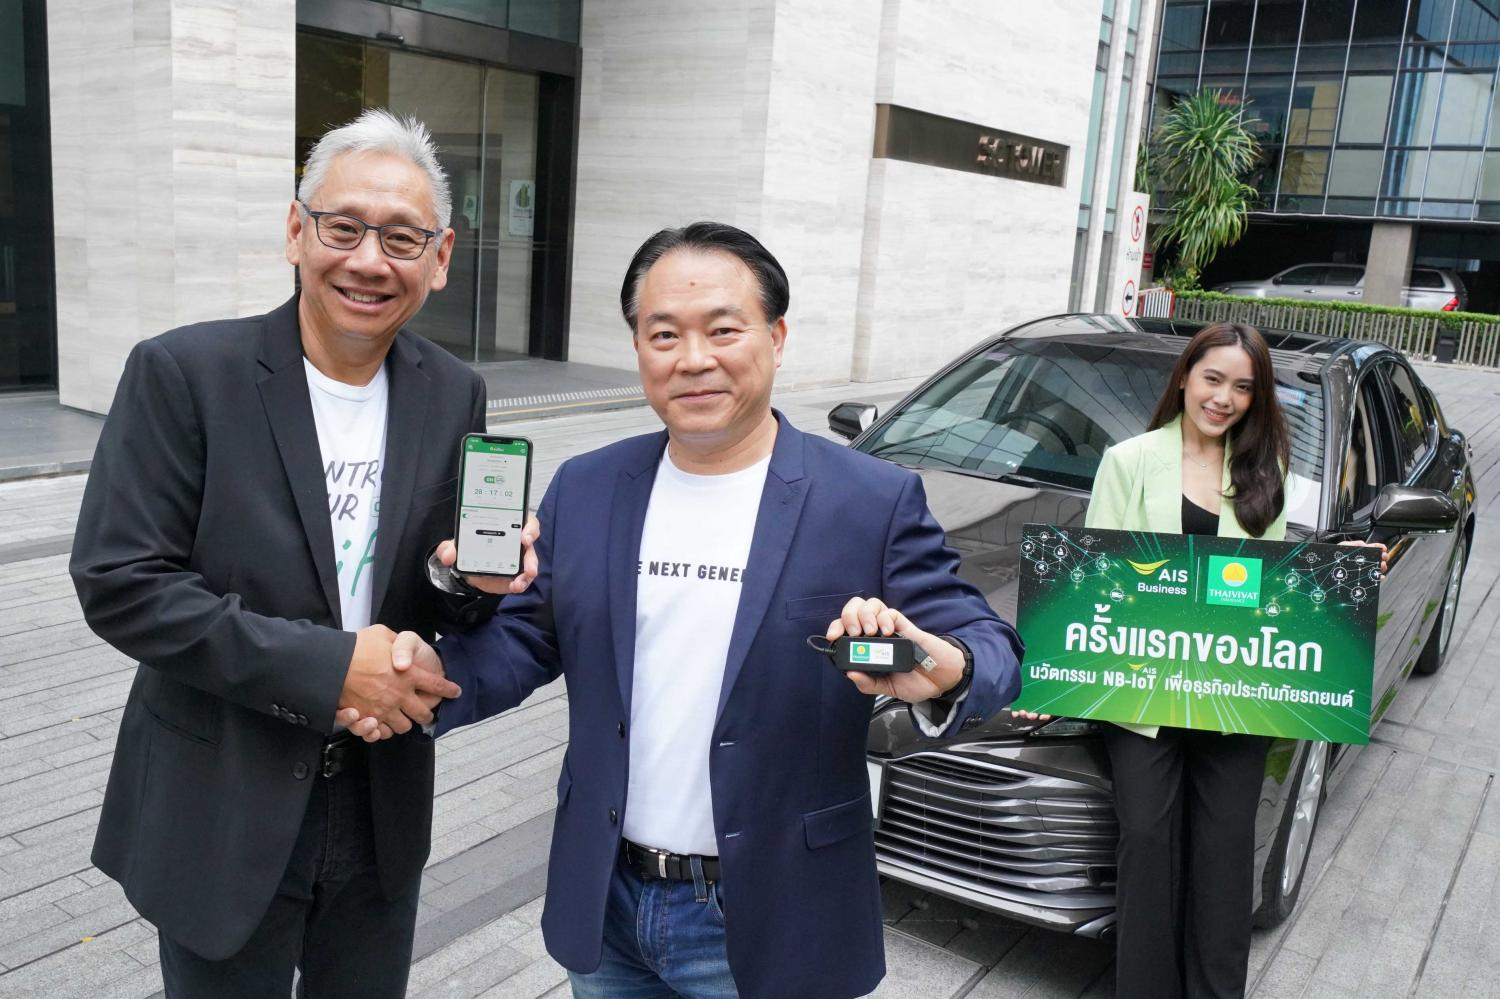 Jirapan Assawathanakul (left), president and chief executive of Thaivivat Insurance, and Yongsit Rojsrikul, chief enterprise business officer of Advanced Info Service, hope to revolutionise auto coverage.